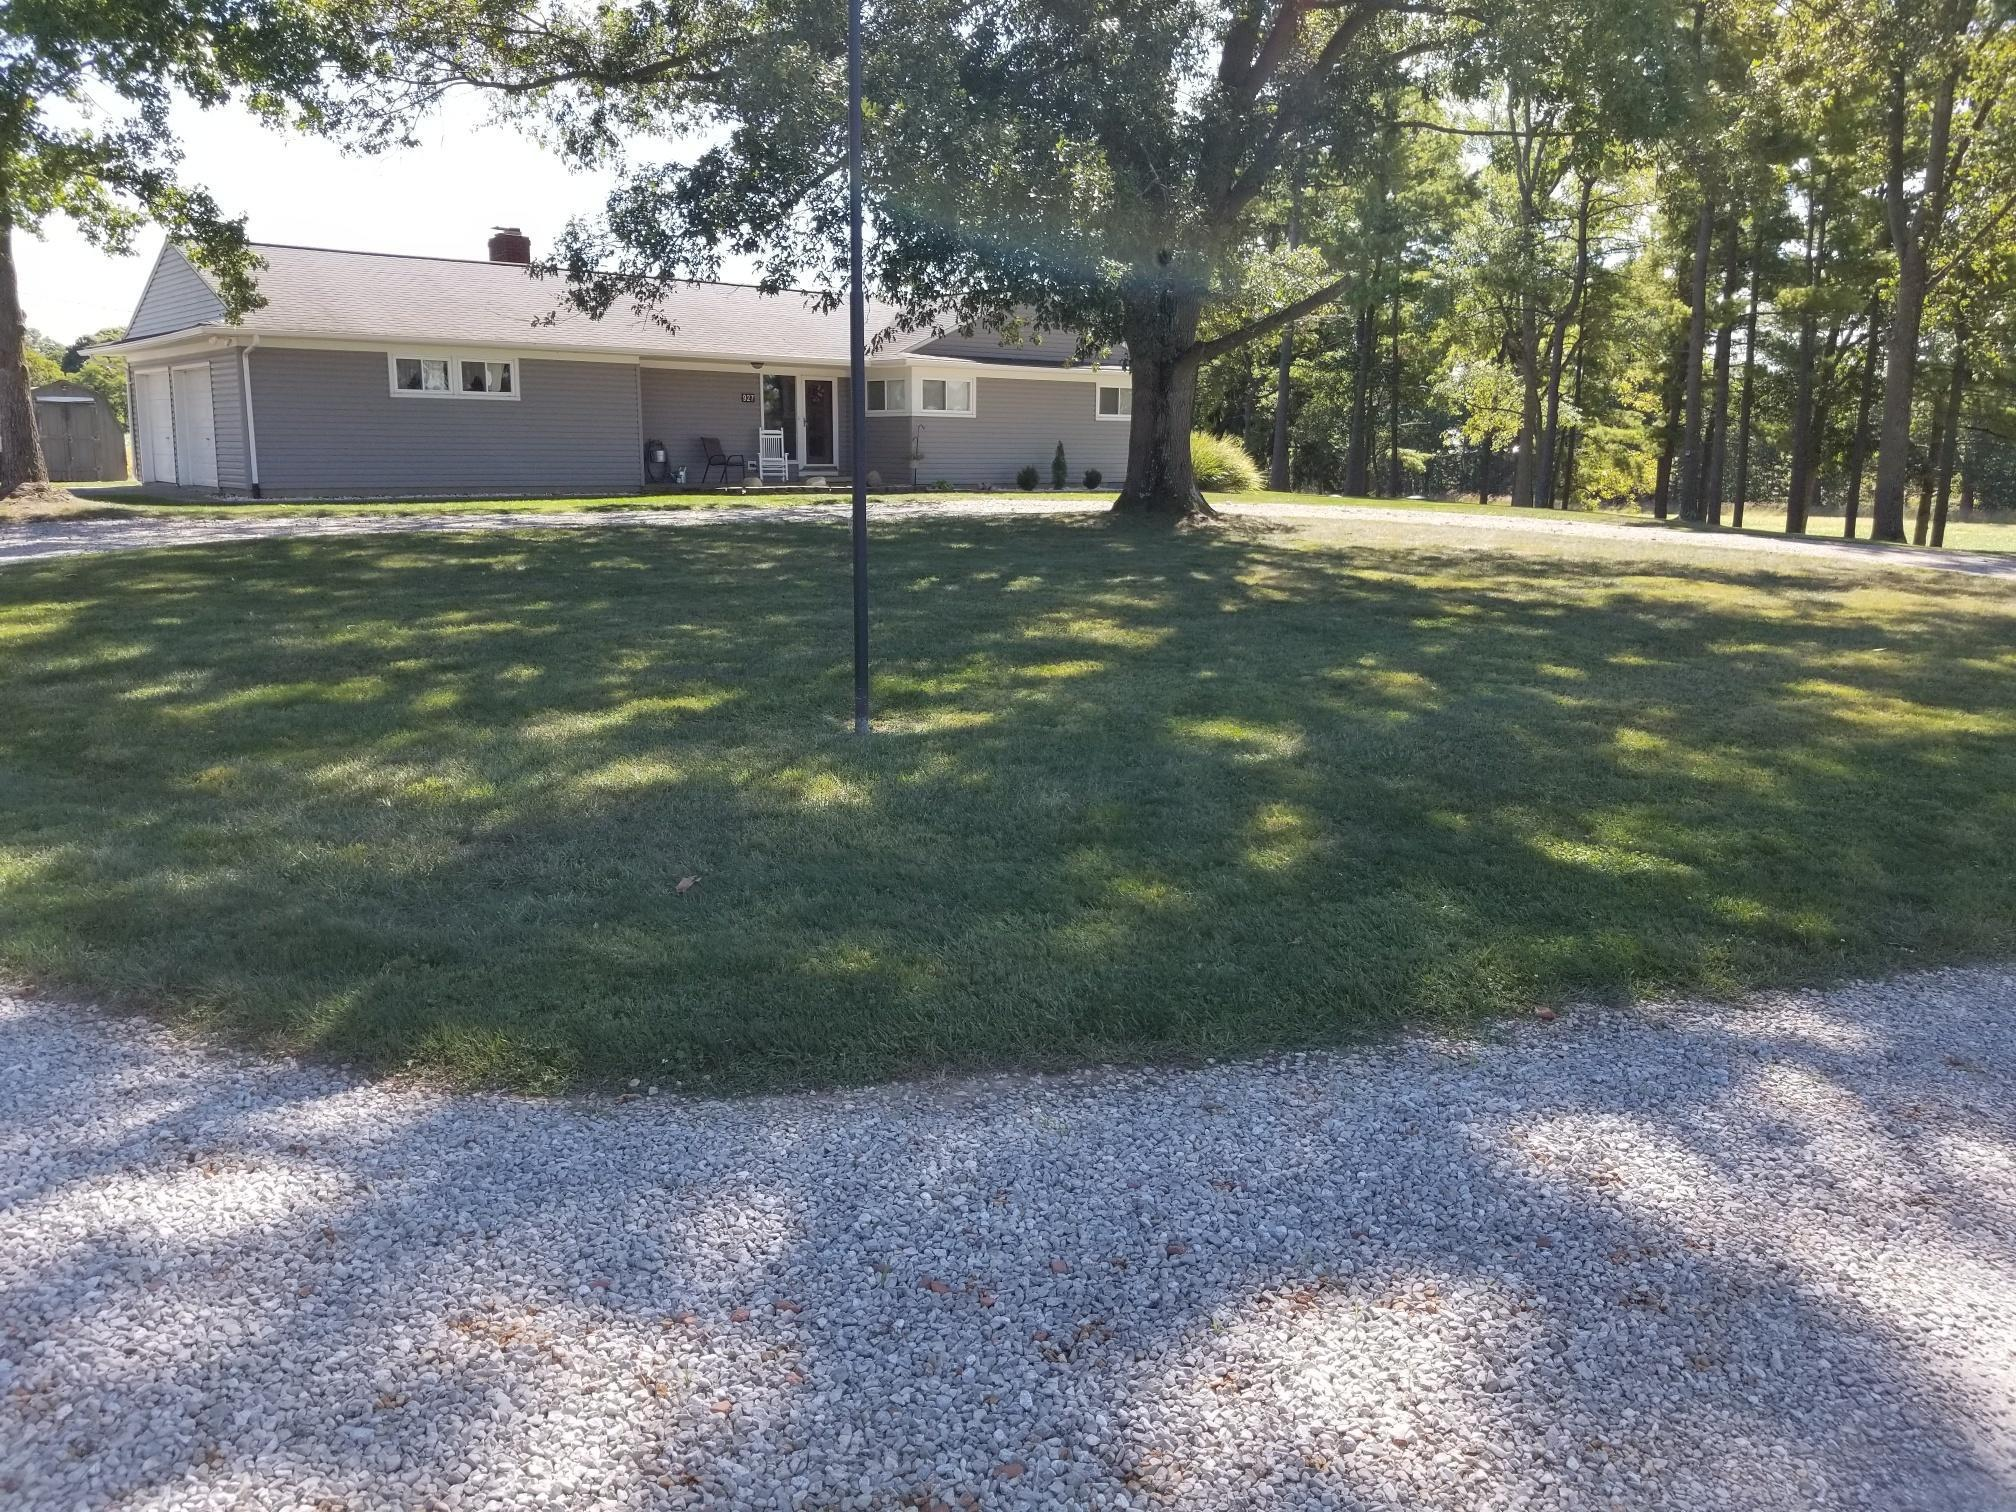 Property for sale at 927 Stoutsville Pike, Circleville,  Ohio 43113